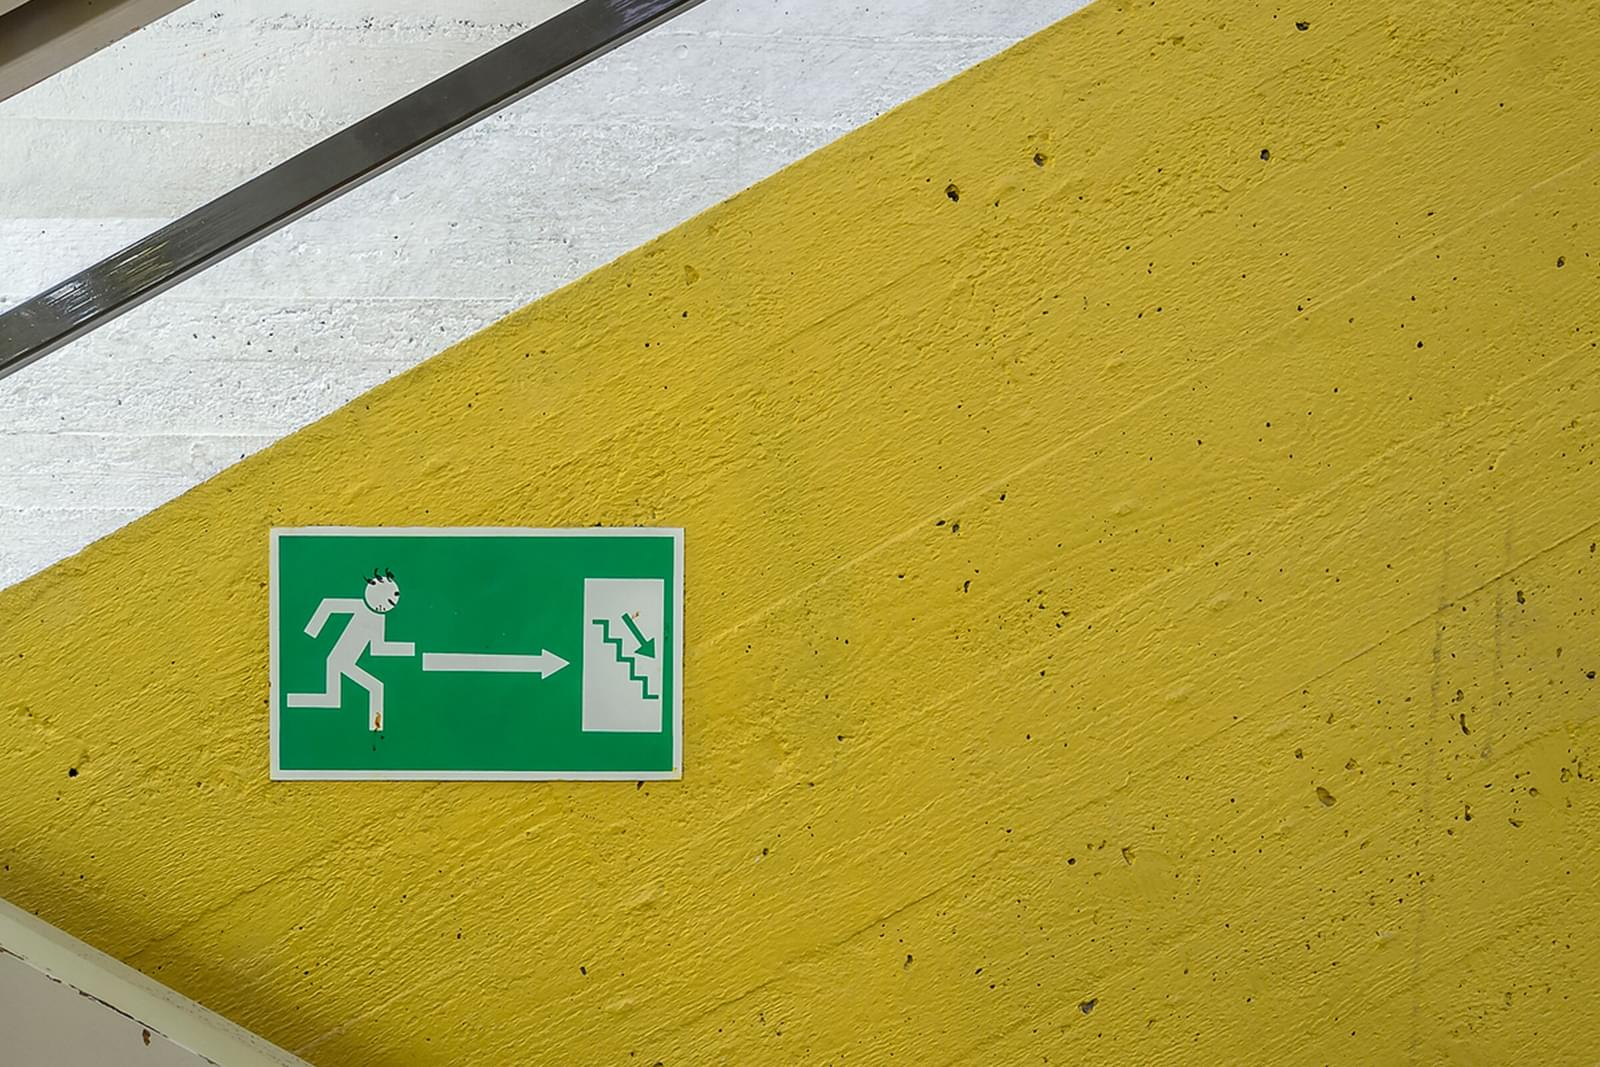 Stark shapes with yellow and white stripes and an exit sign